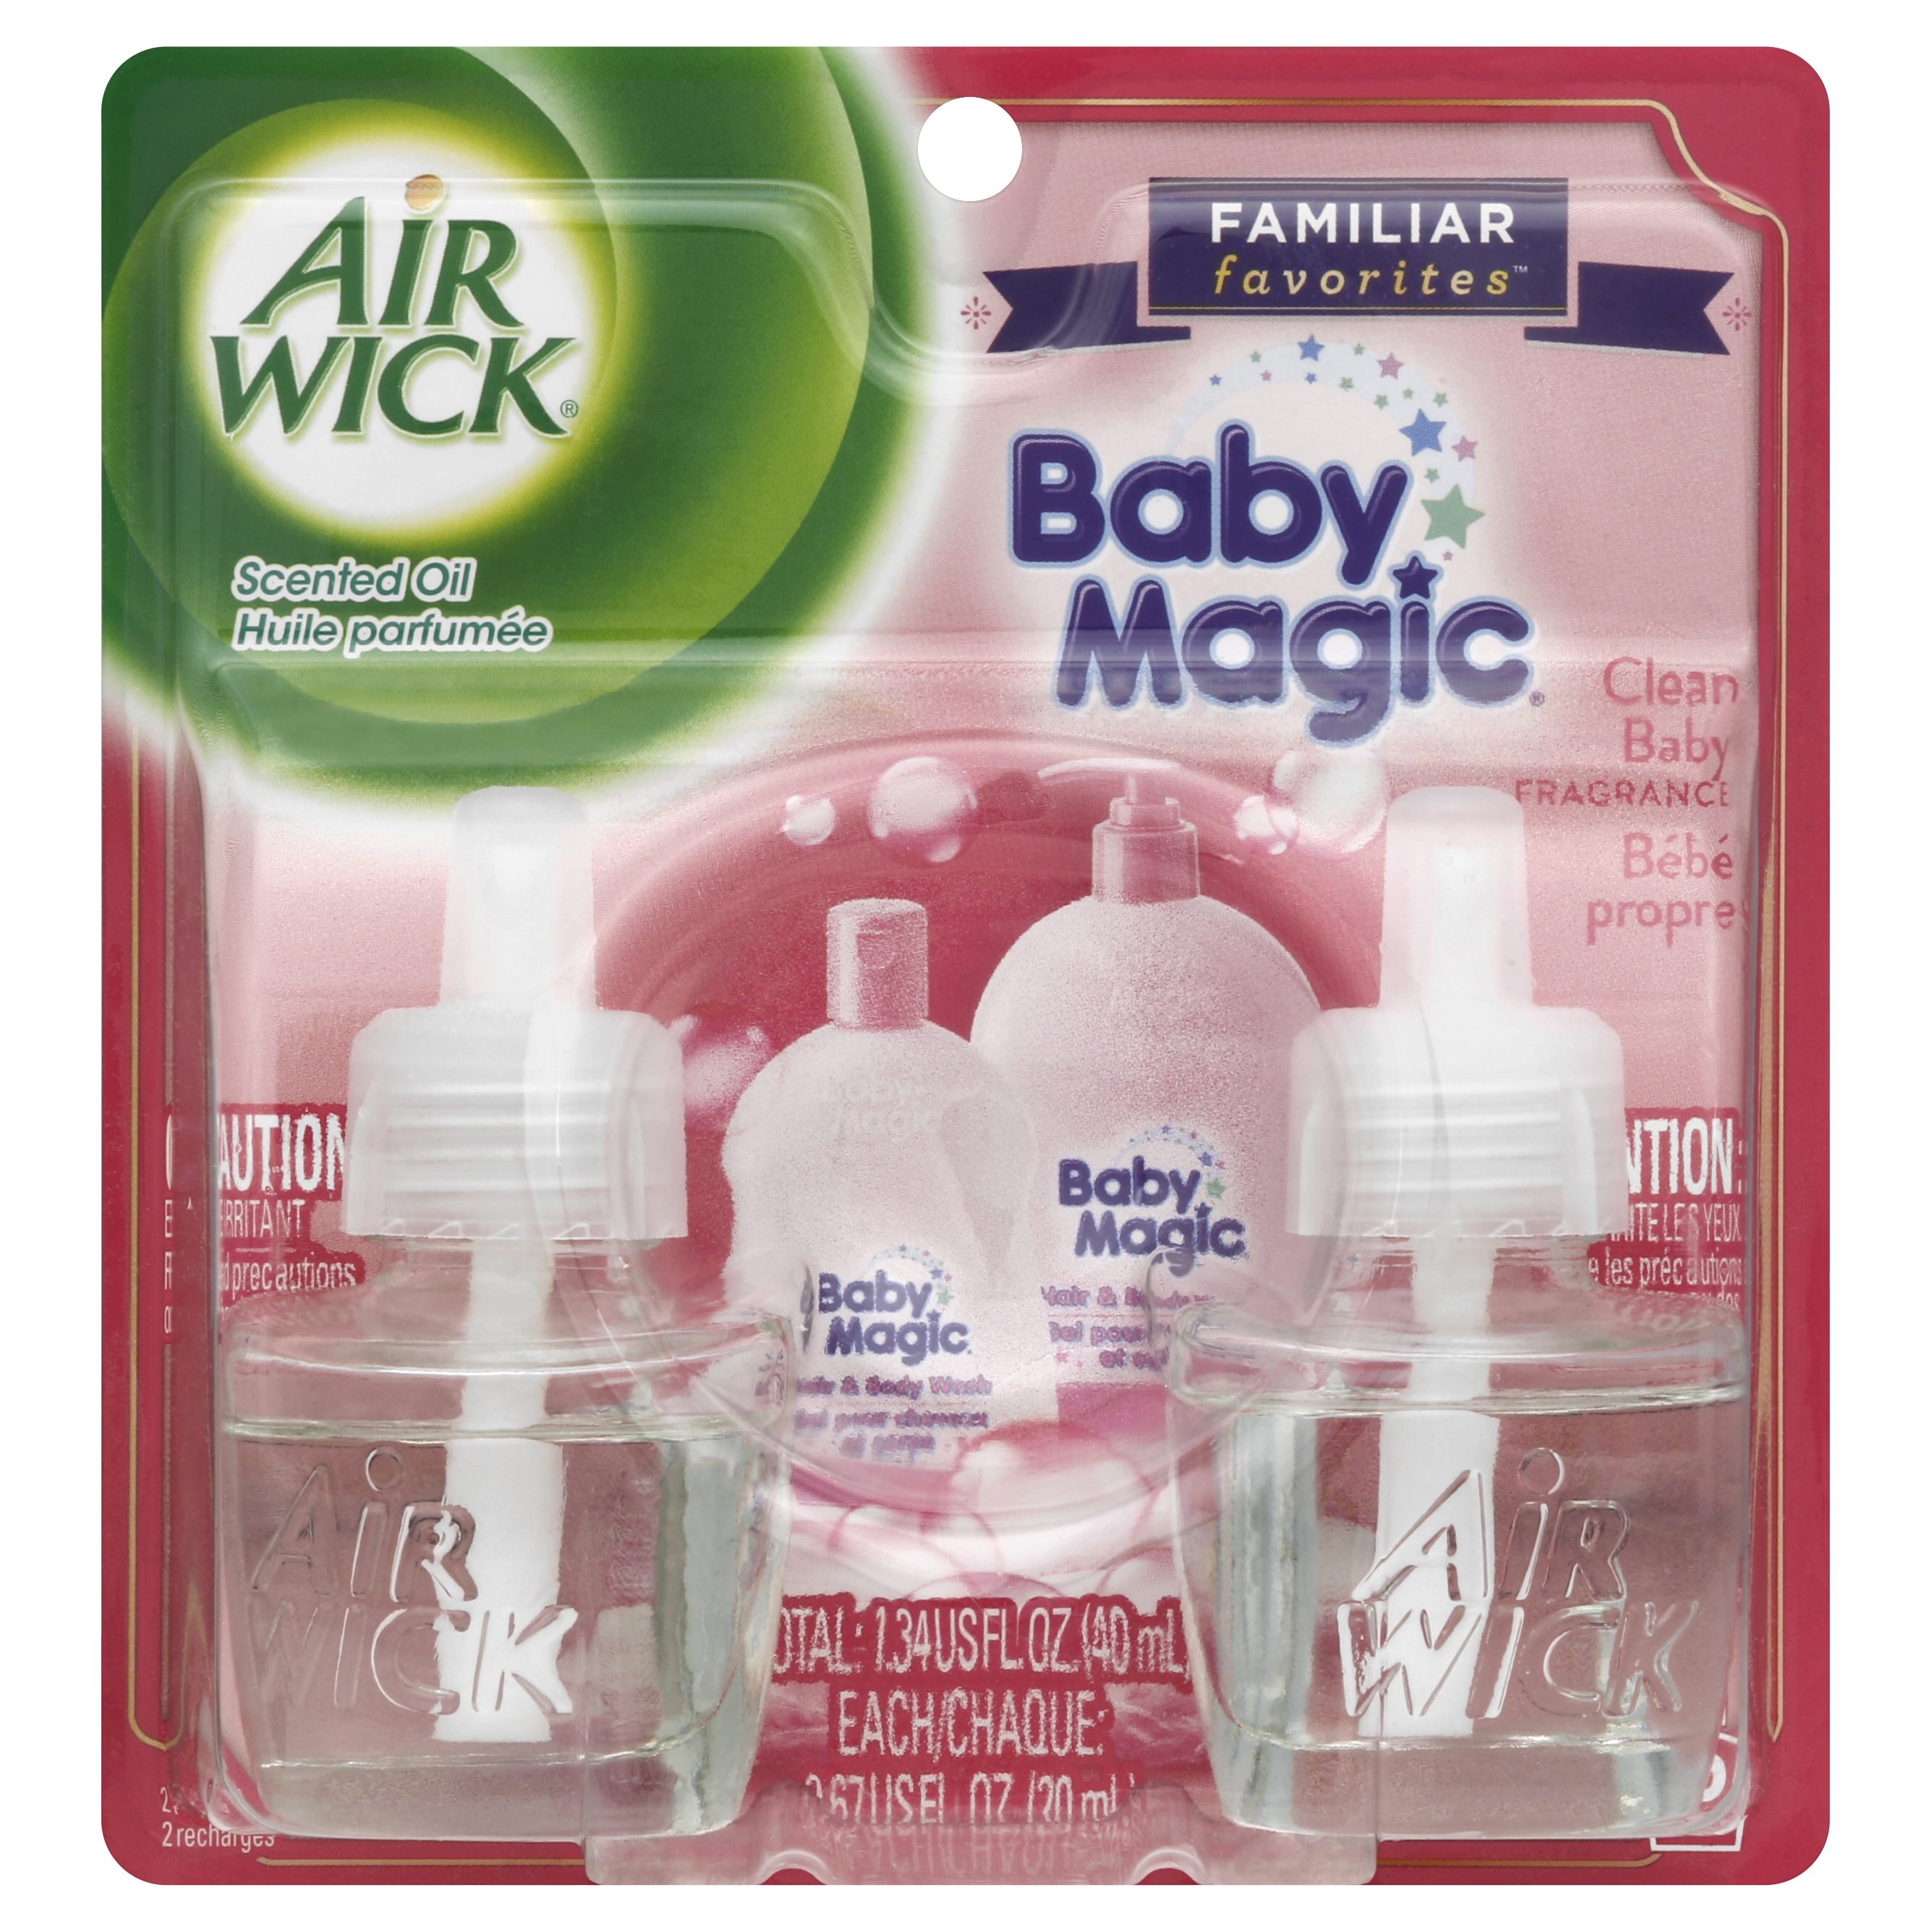 Air Wick Scented Oil Air Freshener, Familiar Favorites Collection, Baby Magic Scent, Twin Refills, 0.67 Ounce